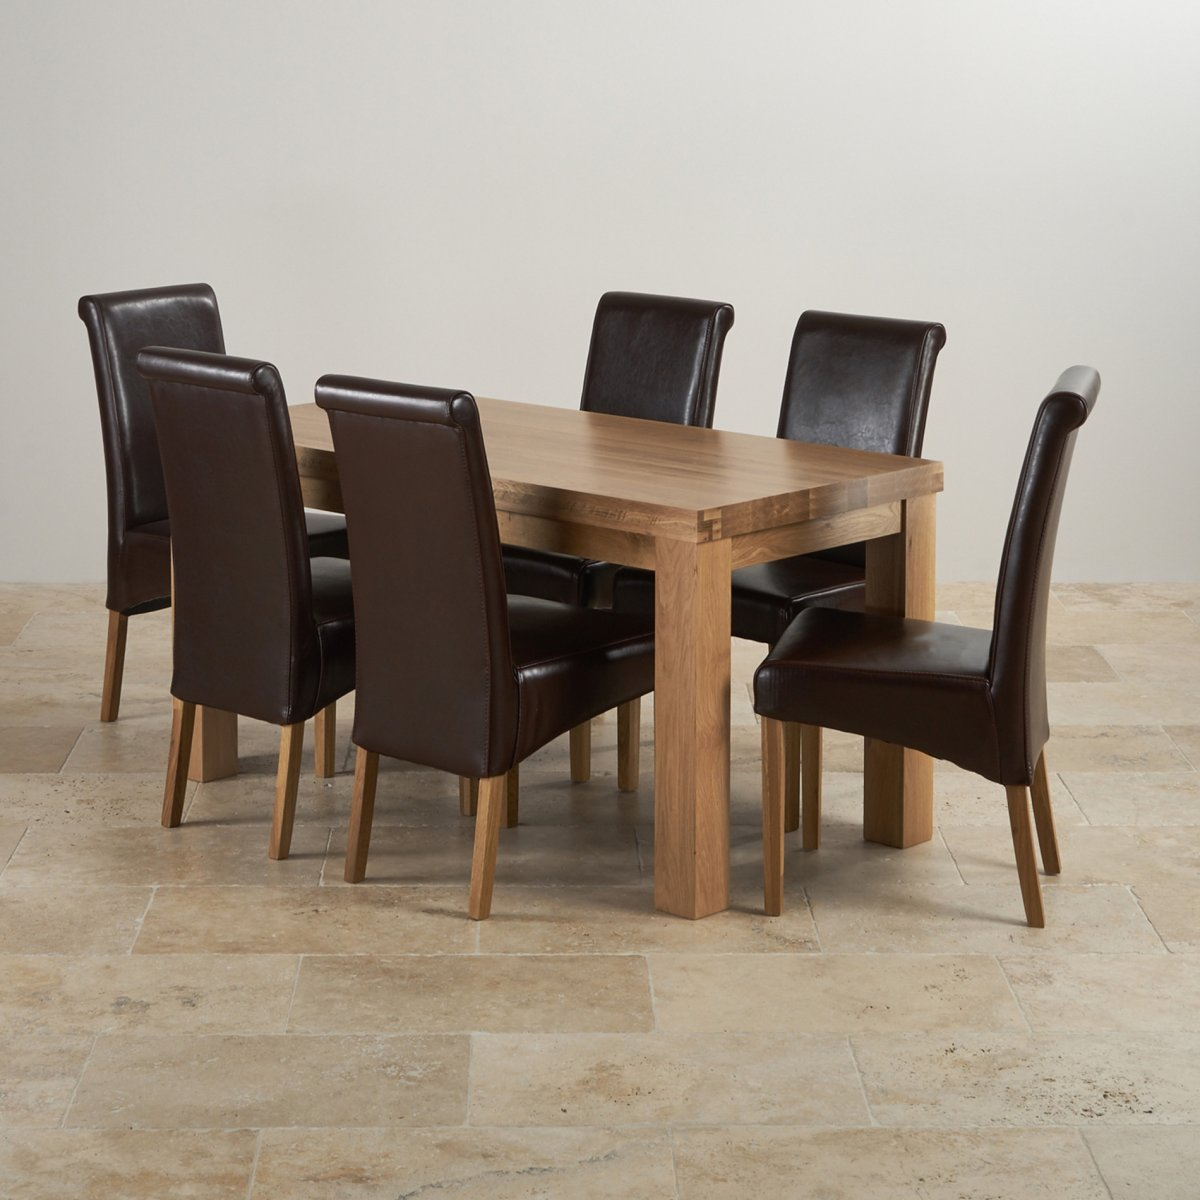 contemporary dining set in oak table 6 brown leather chairs. Black Bedroom Furniture Sets. Home Design Ideas